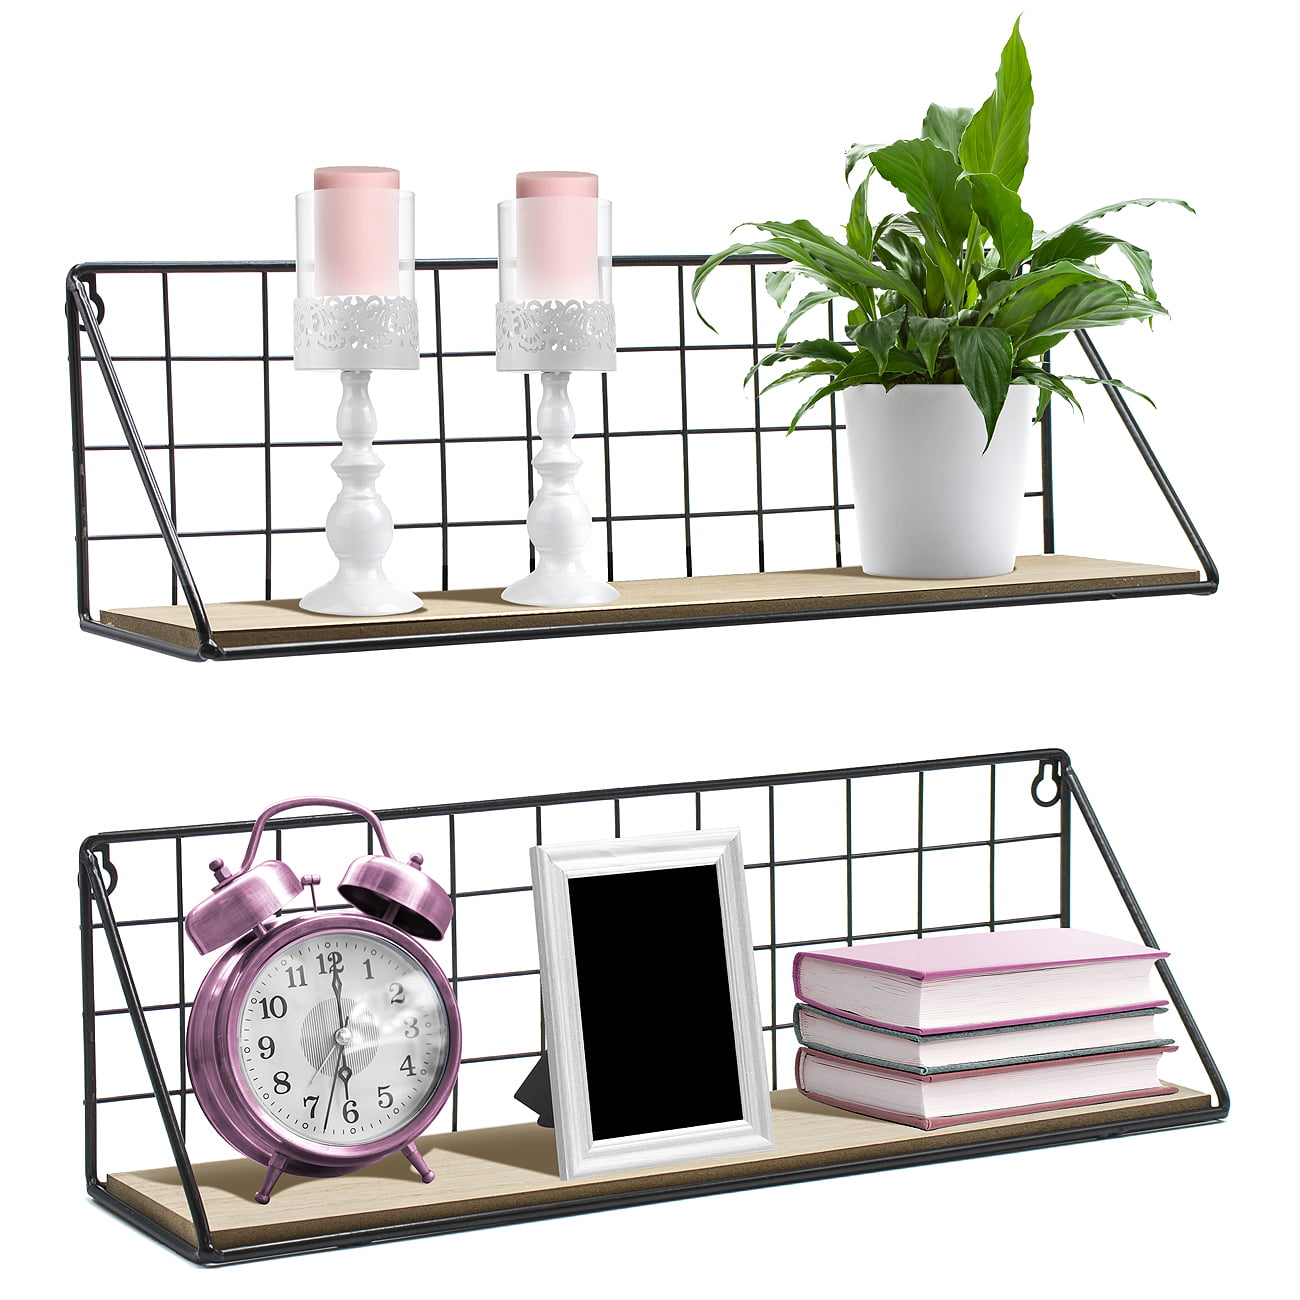 Sorbus Floating Shelves Wall Mounted Rustic Wood Storage Set For Picture  Frames, Collectibles, Decorative Items, Great For Living Room, Office,